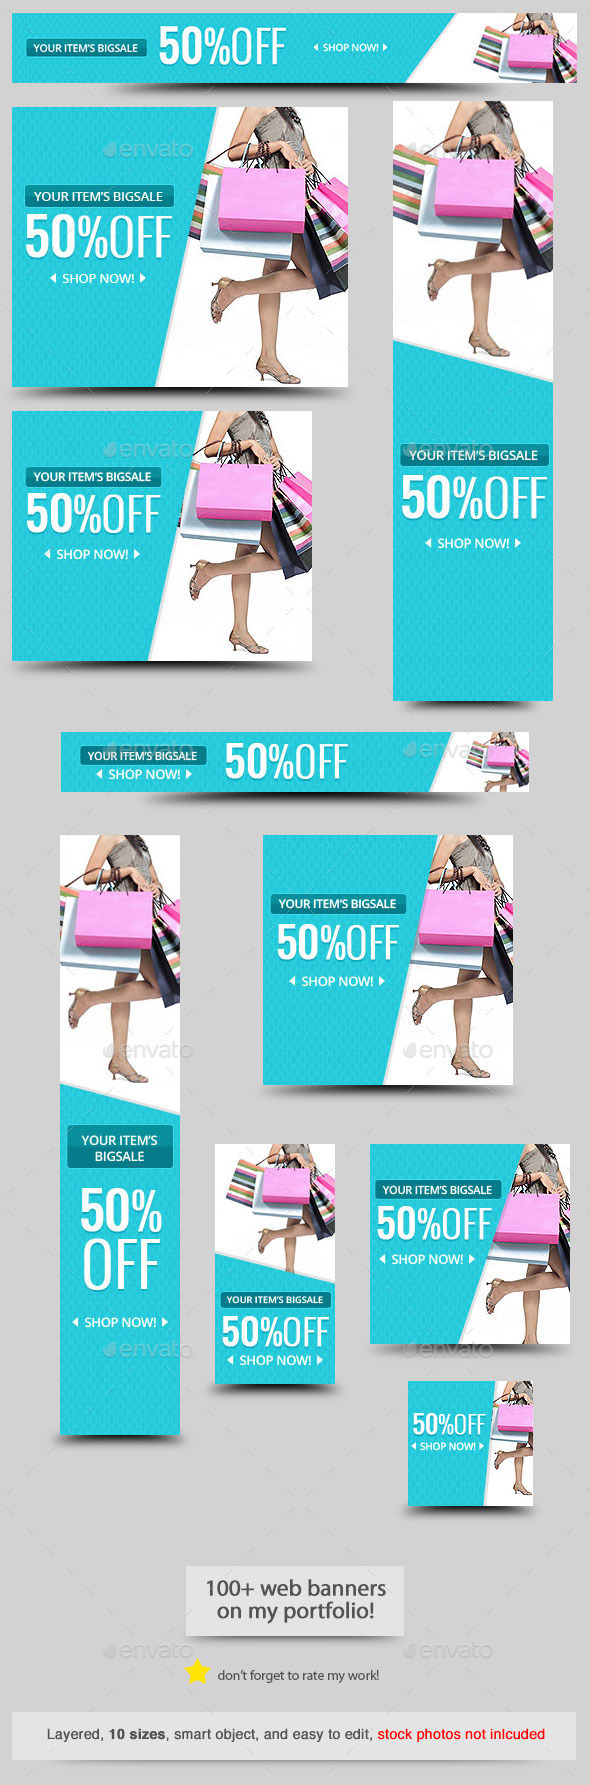 Cool Big Sale Web Banner Template - Banners & Ads Web Elements